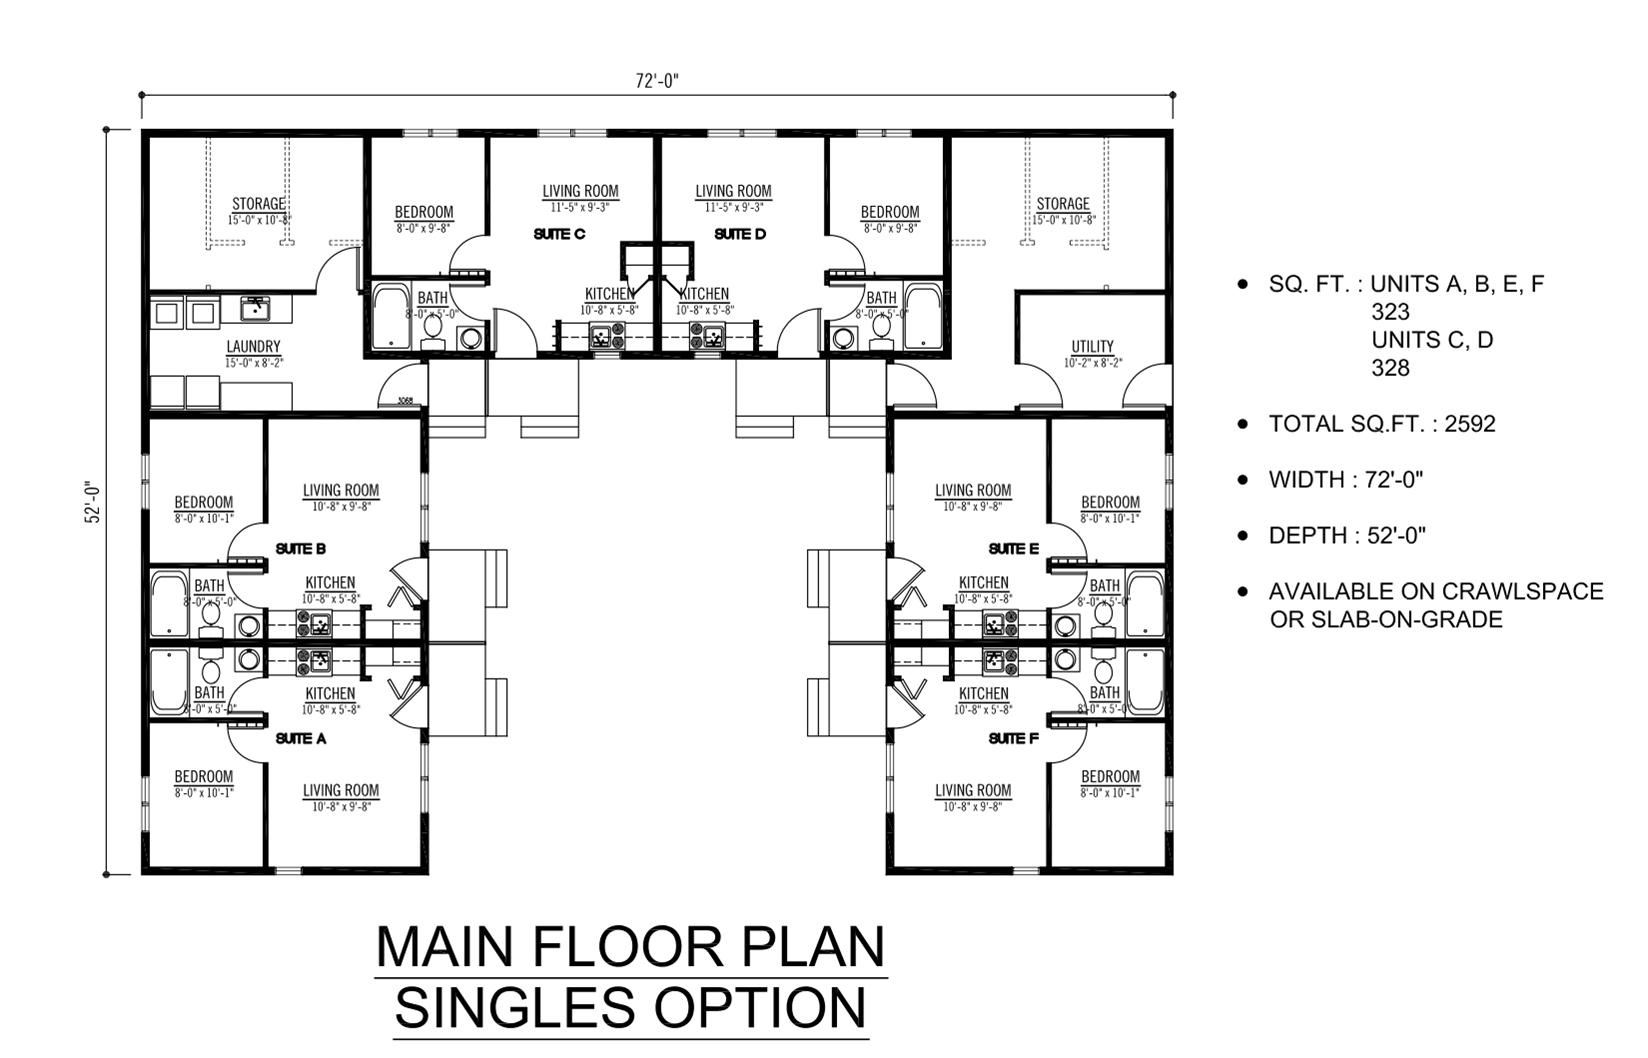 stunning 6 plex floor plans ideas home building plans On 6 plex floor plans